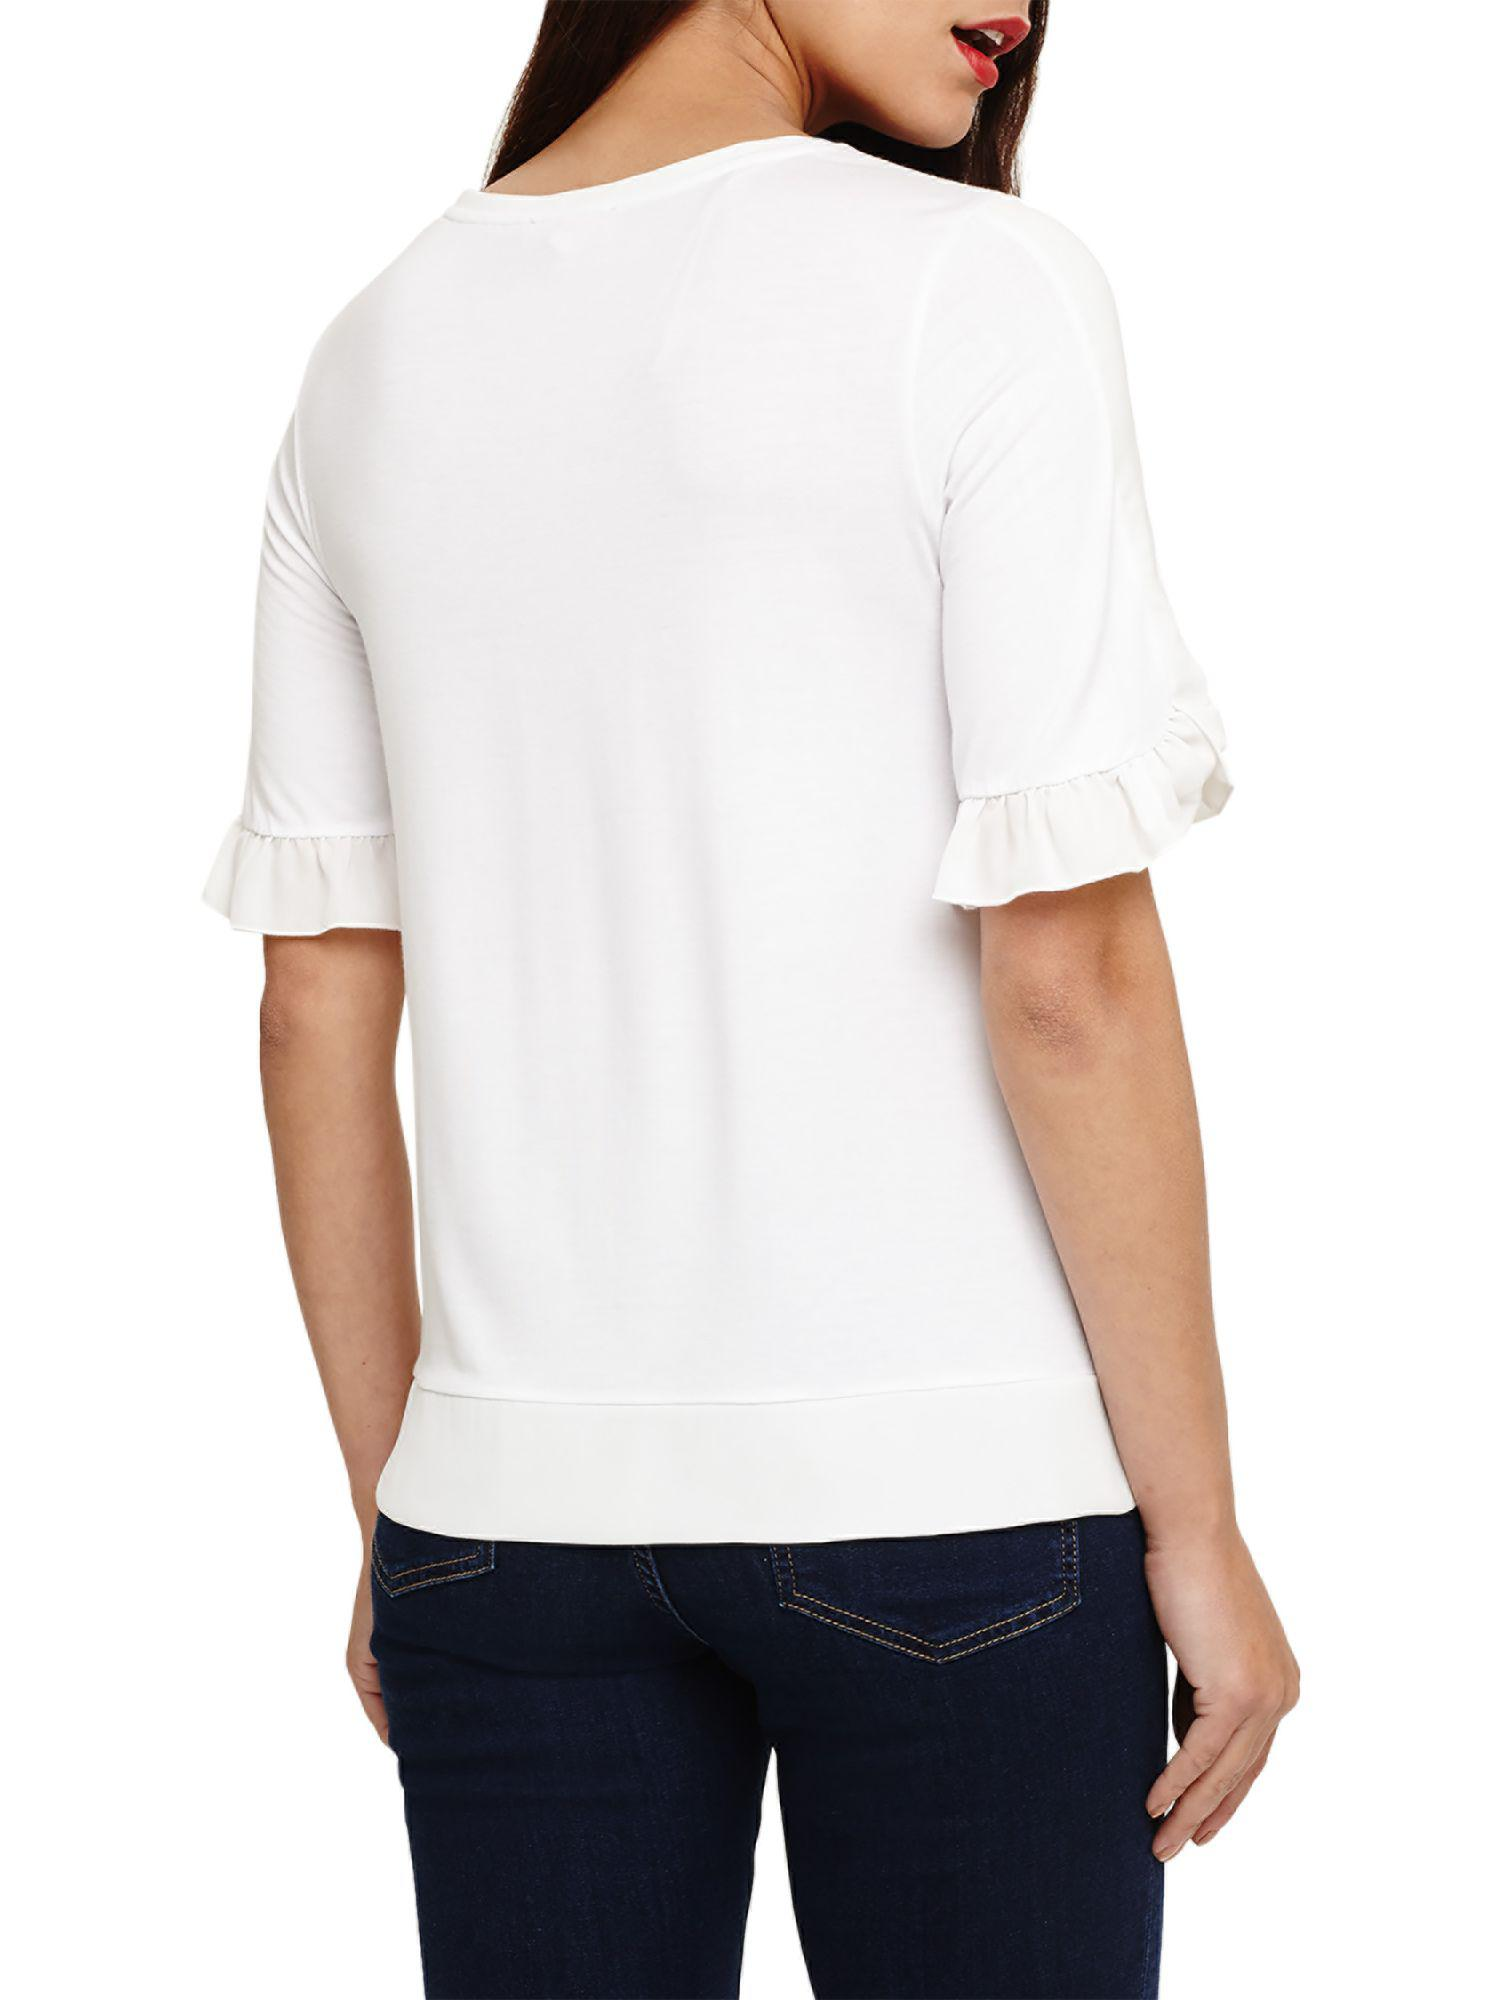 Cheap Sale Visit Phase Eight Finley Frill Sleeve Top Discount Visit New Huge Surprise Sale Online Free Shipping New aU1pprA